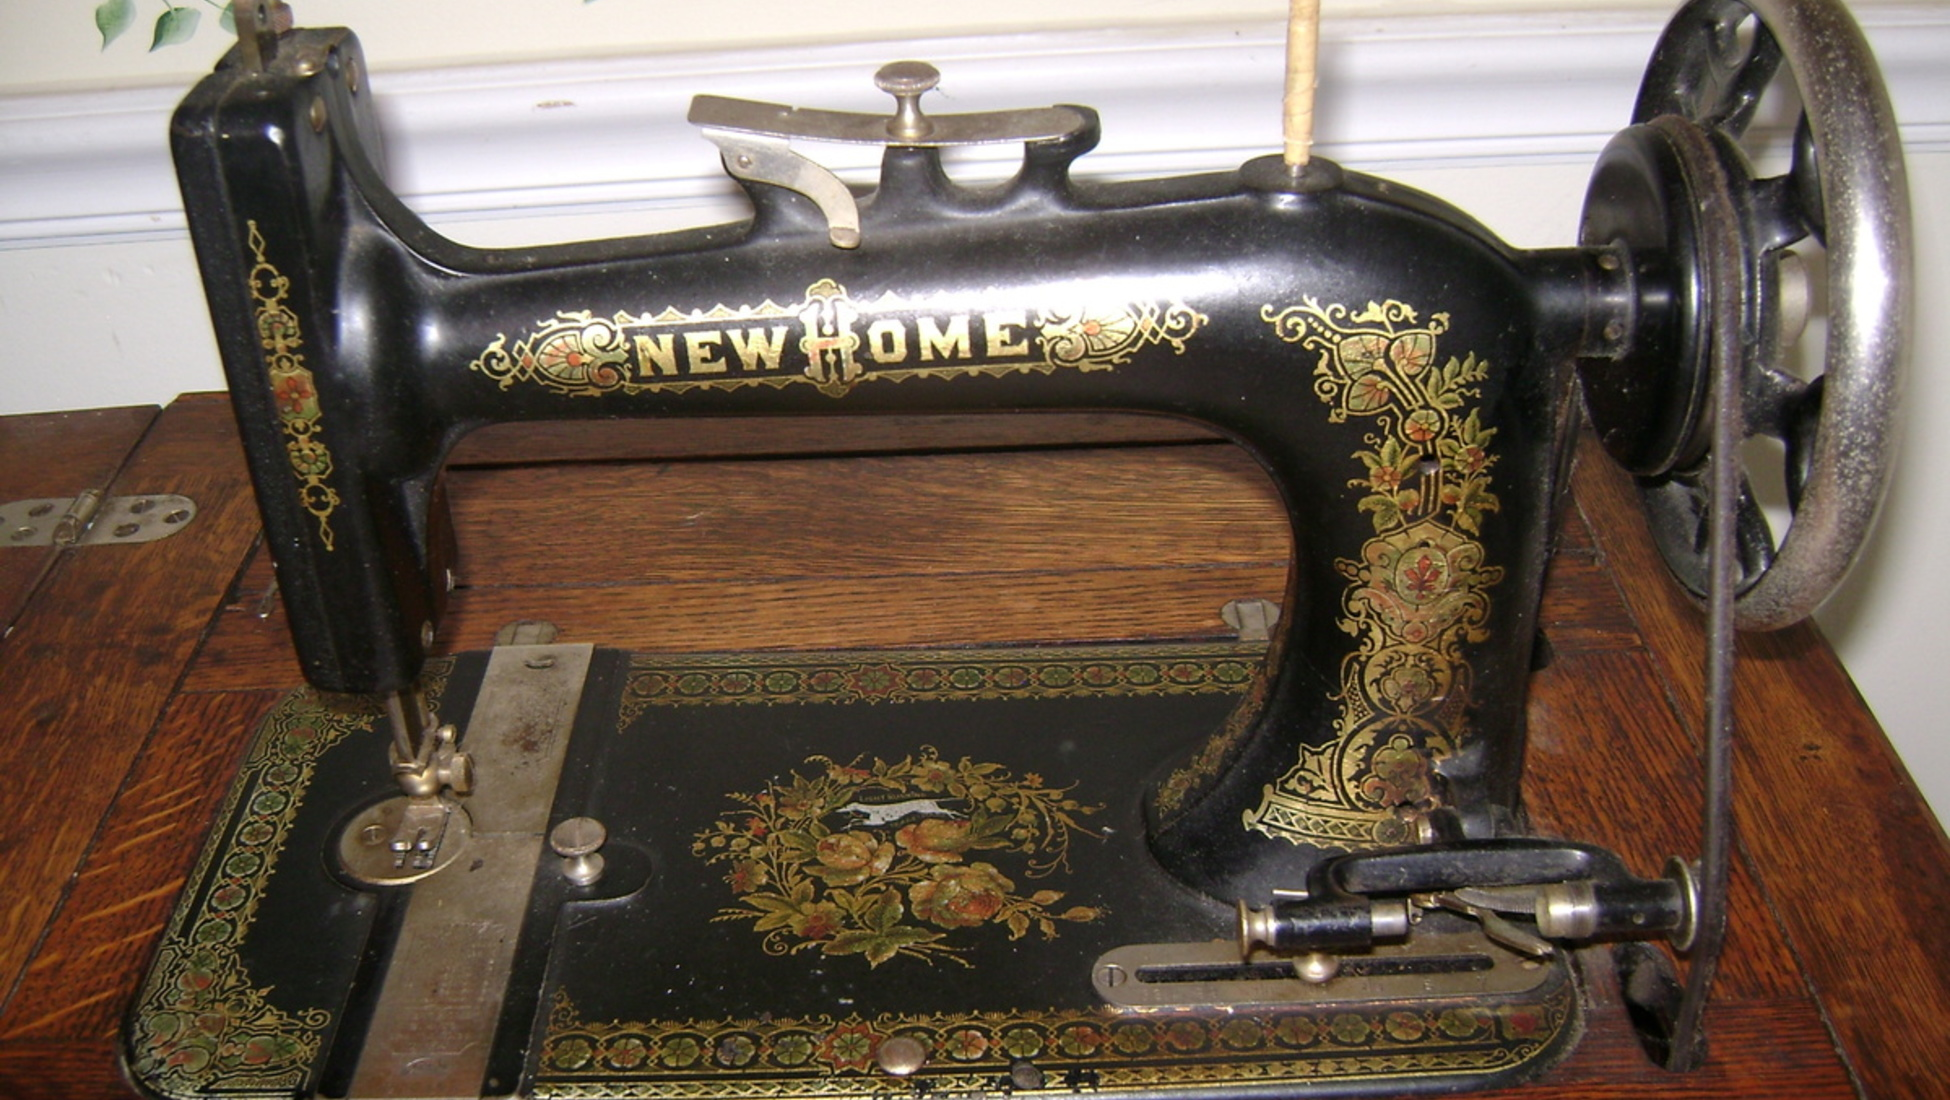 New home sewing machine dating 2